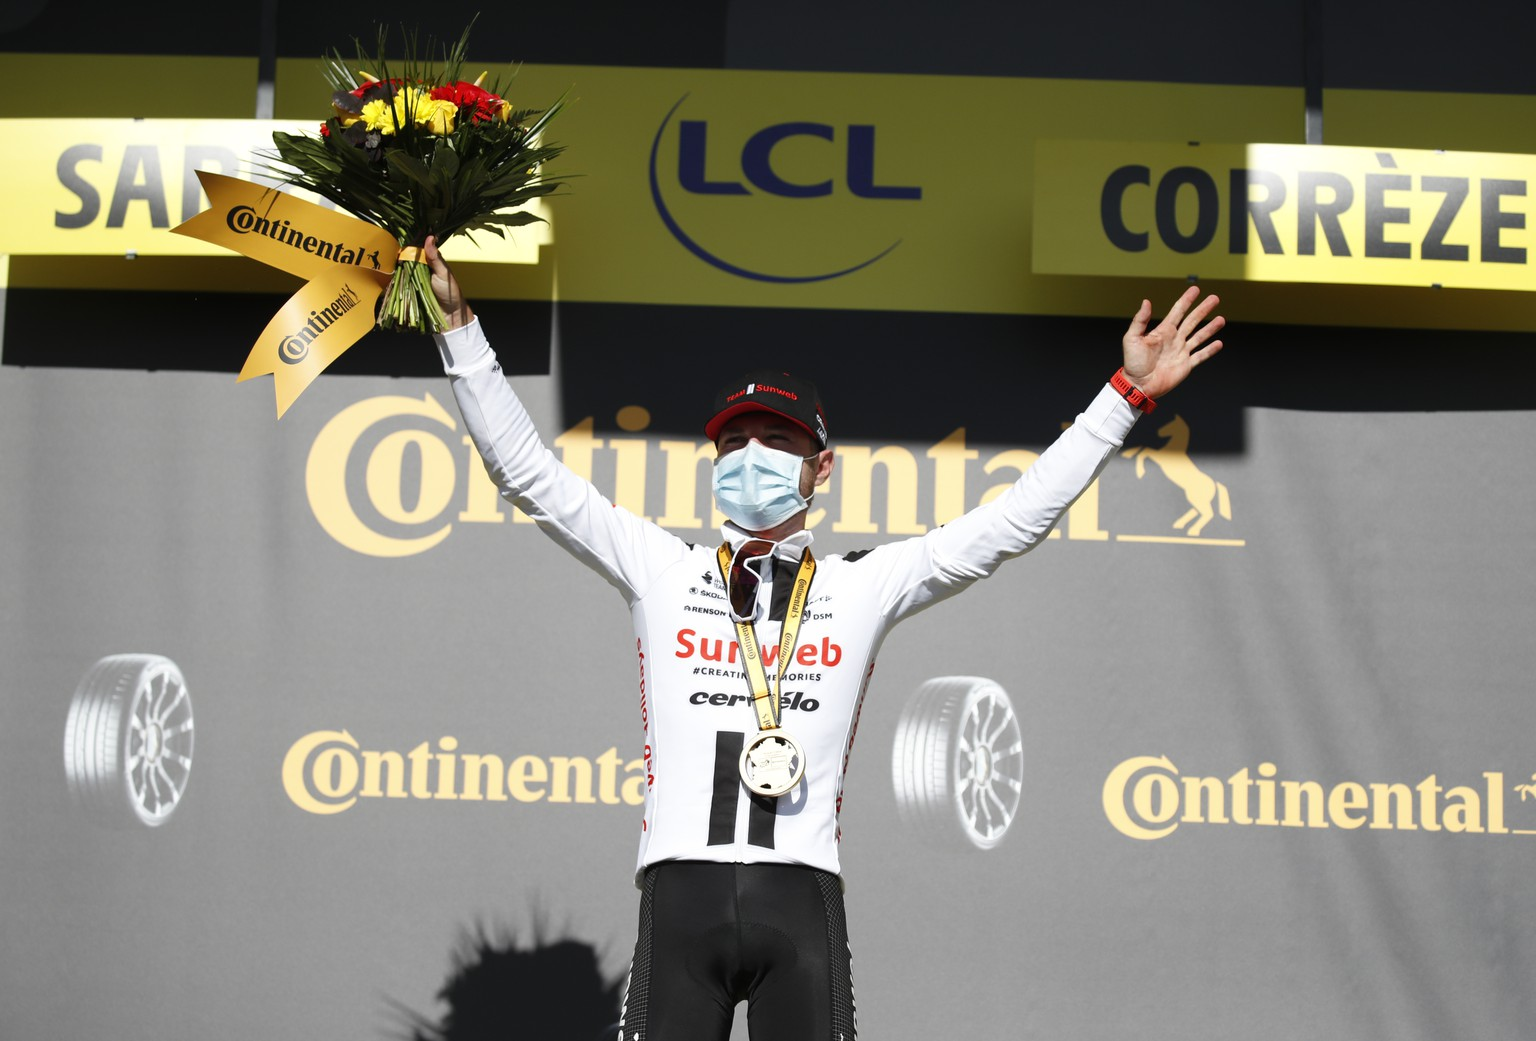 Switzerland's Marc Hirschi celebrates on the podium after winning the stage 12 of the Tour de France cycling race over 218 kilometers from Chauvigny to Sarran, Thursday, Sept. 10, 2020. (Sebastien Nogier/Pool via AP)